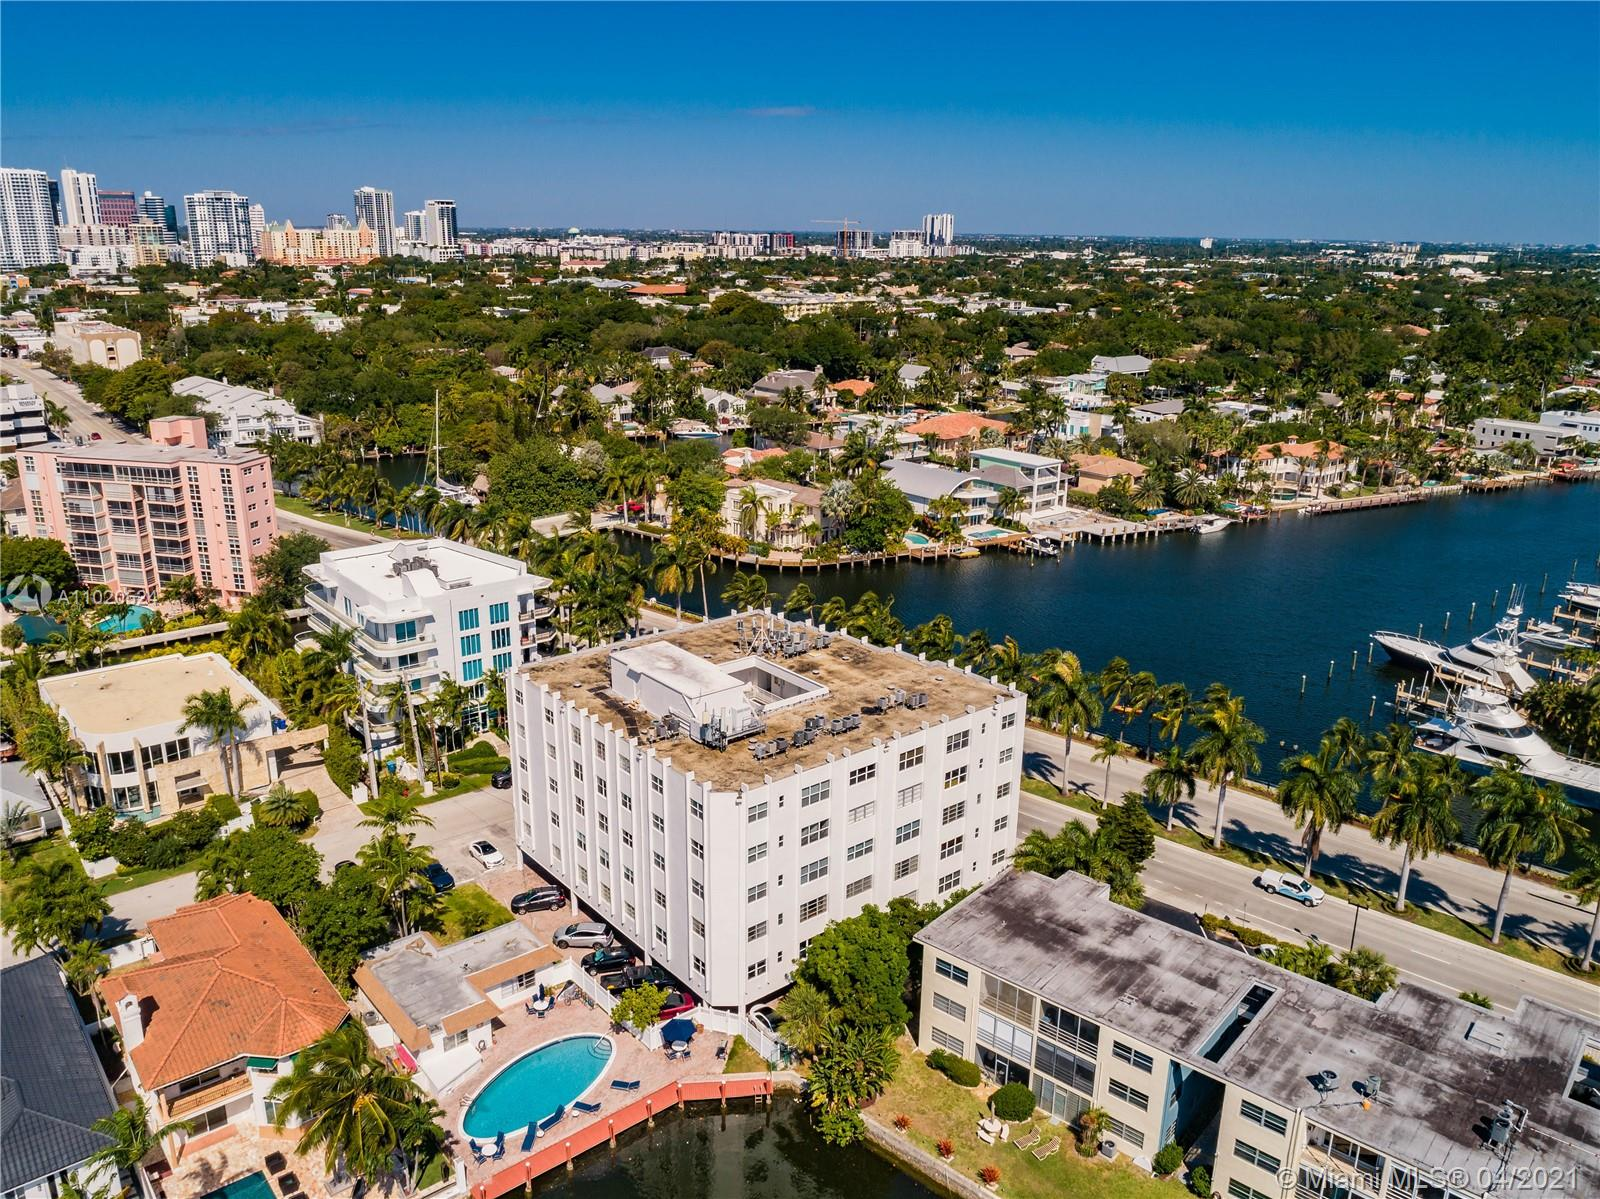 Fantastic Location! East Las Olas Blvd Boutique condo building surrounded by Las Olas Isles located on the 5th floor. Walk to restaurants, bars, shopping, and nearby Fort Lauderdale Beach. Impact windows doors, pool next to dock, elevator, laundry, and 1 assigned covered parking space. Low maintenance fees, Pet restrictions/no dogs. Las Olas Villas Condo